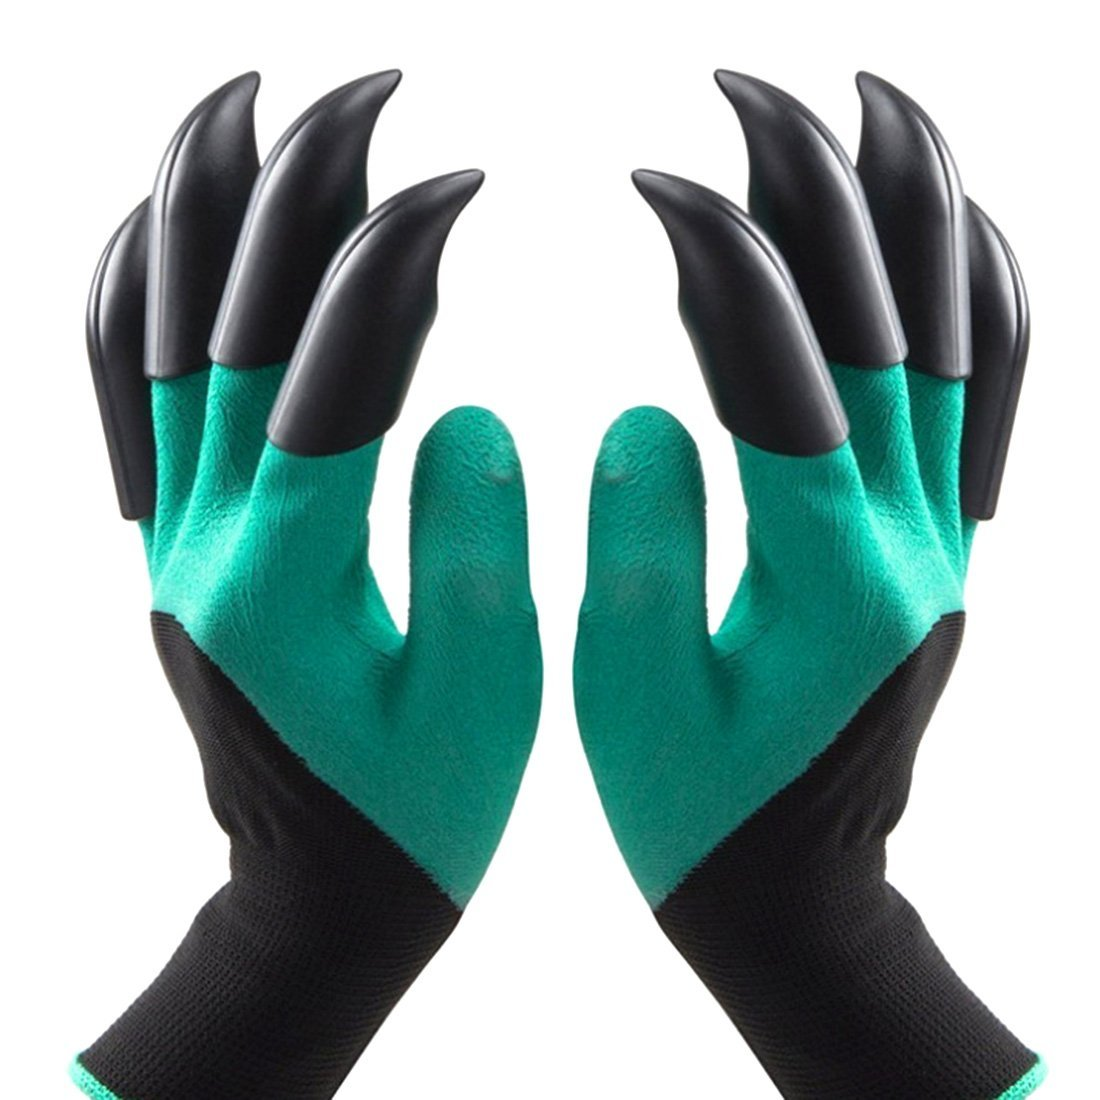 Gardening Gloves With Claws Waterproof Durable Easy Garden Planting Hand Protection Tool For Digging and Planting